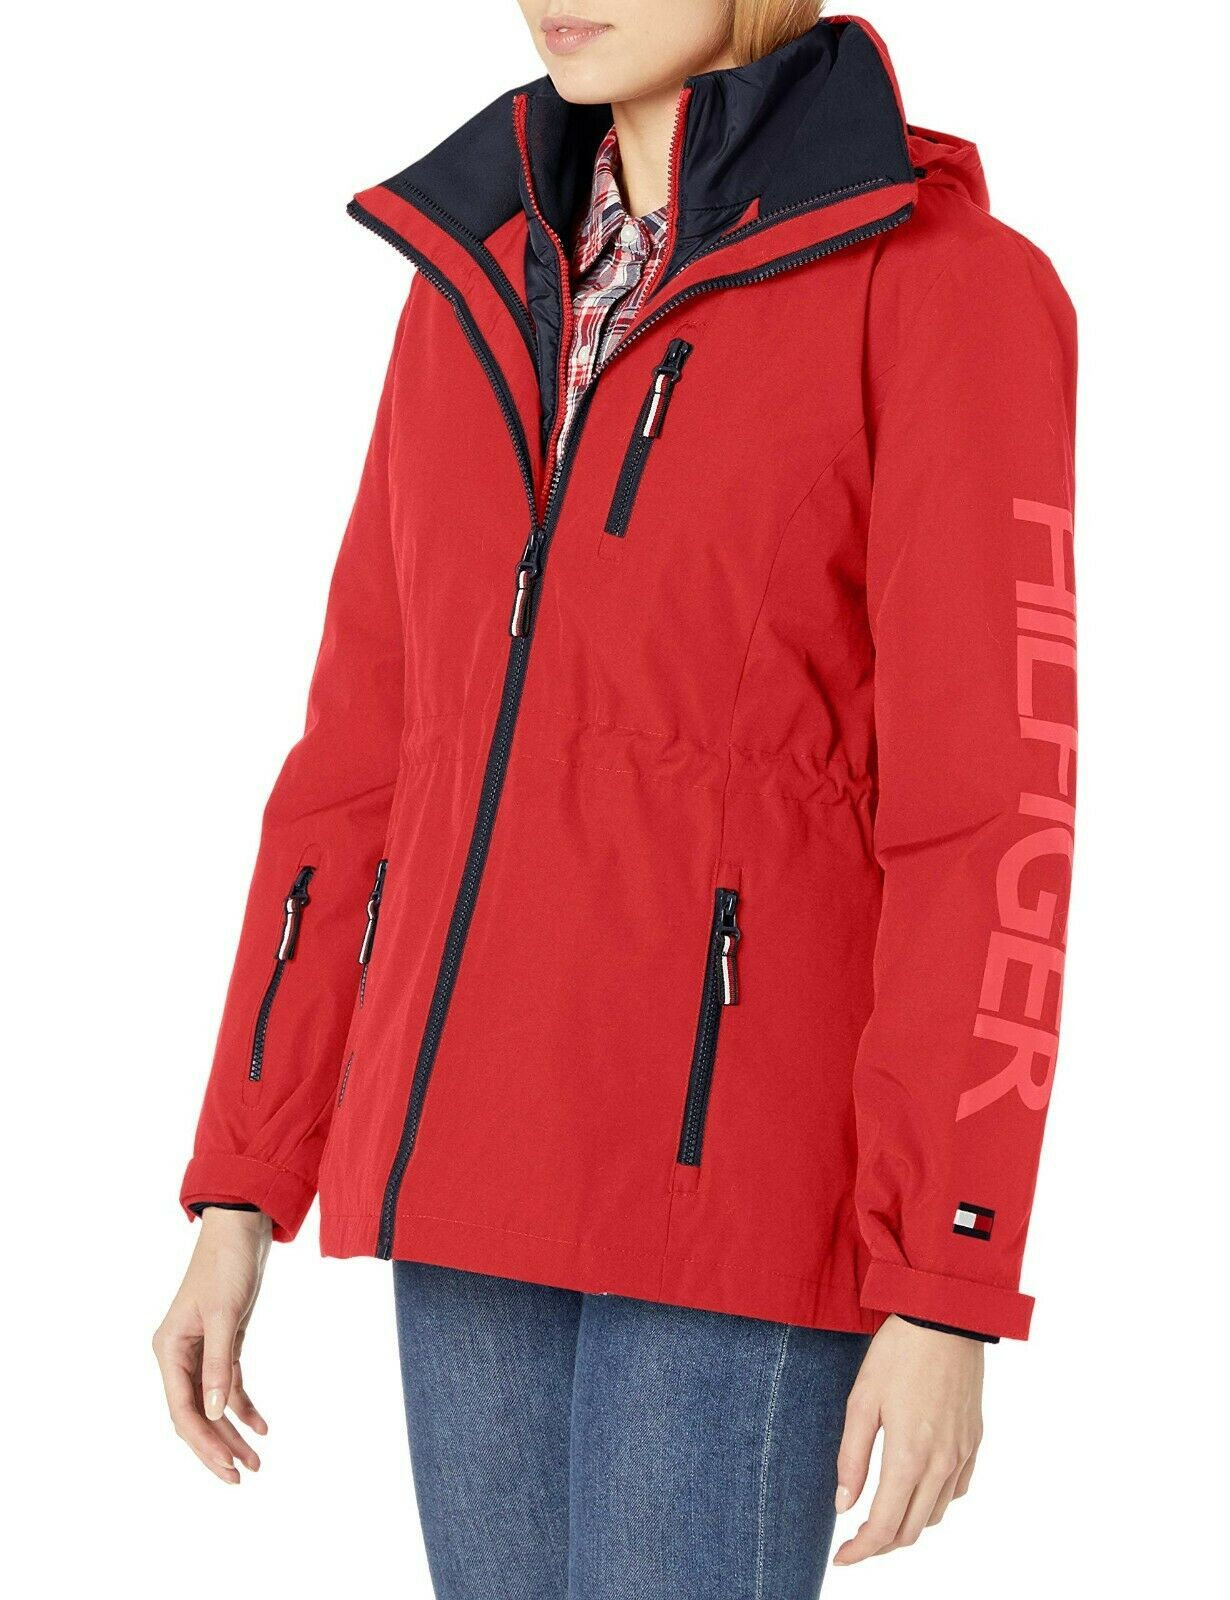 Tommy Hilfiger Rosso Navy Donna 3 IN 1 Systems Giacca Con Cappuccio Staccabile L